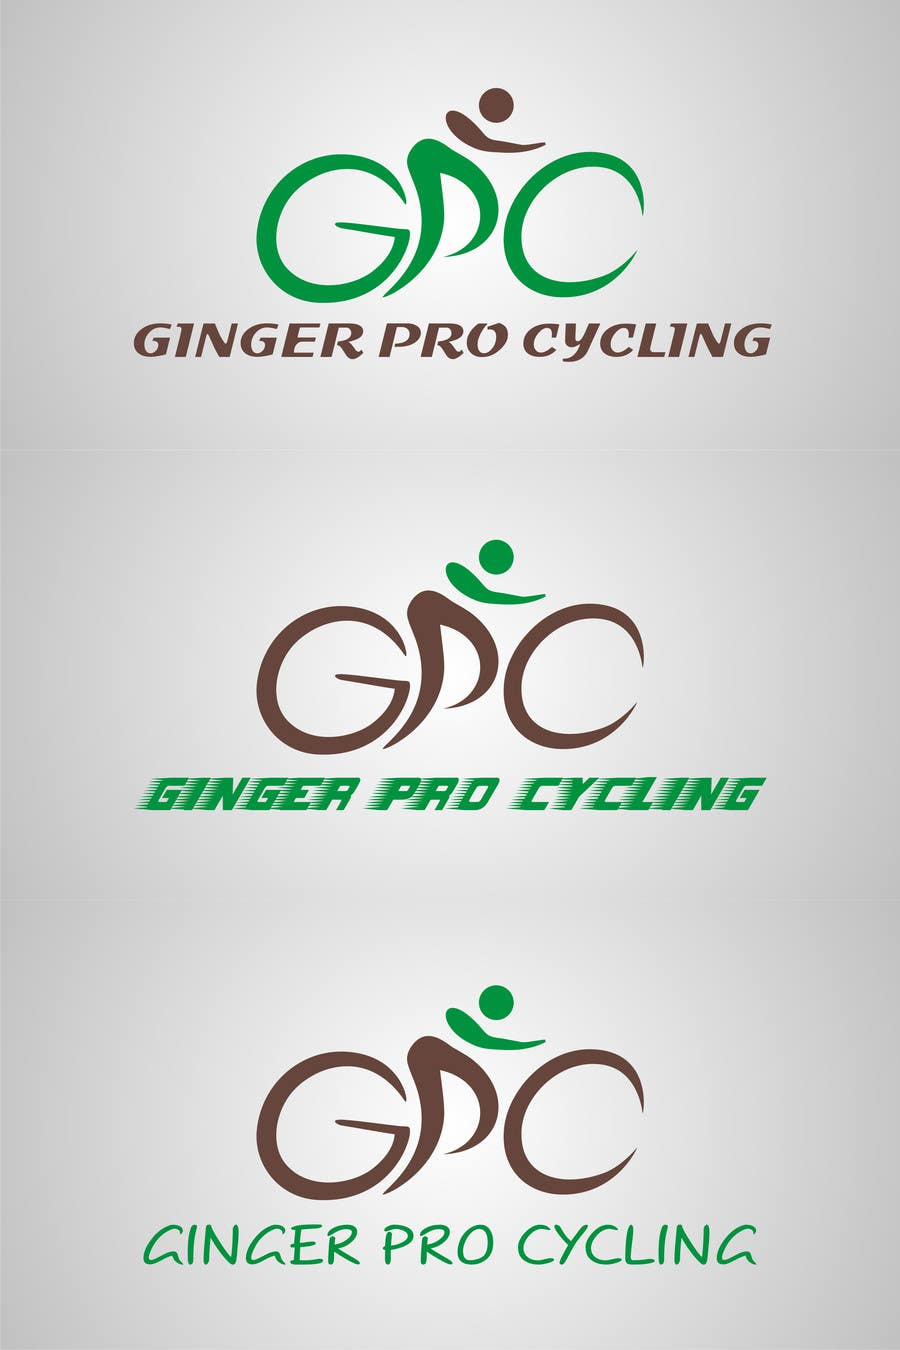 #32 for Ginger Pro Cycling by TATHAE